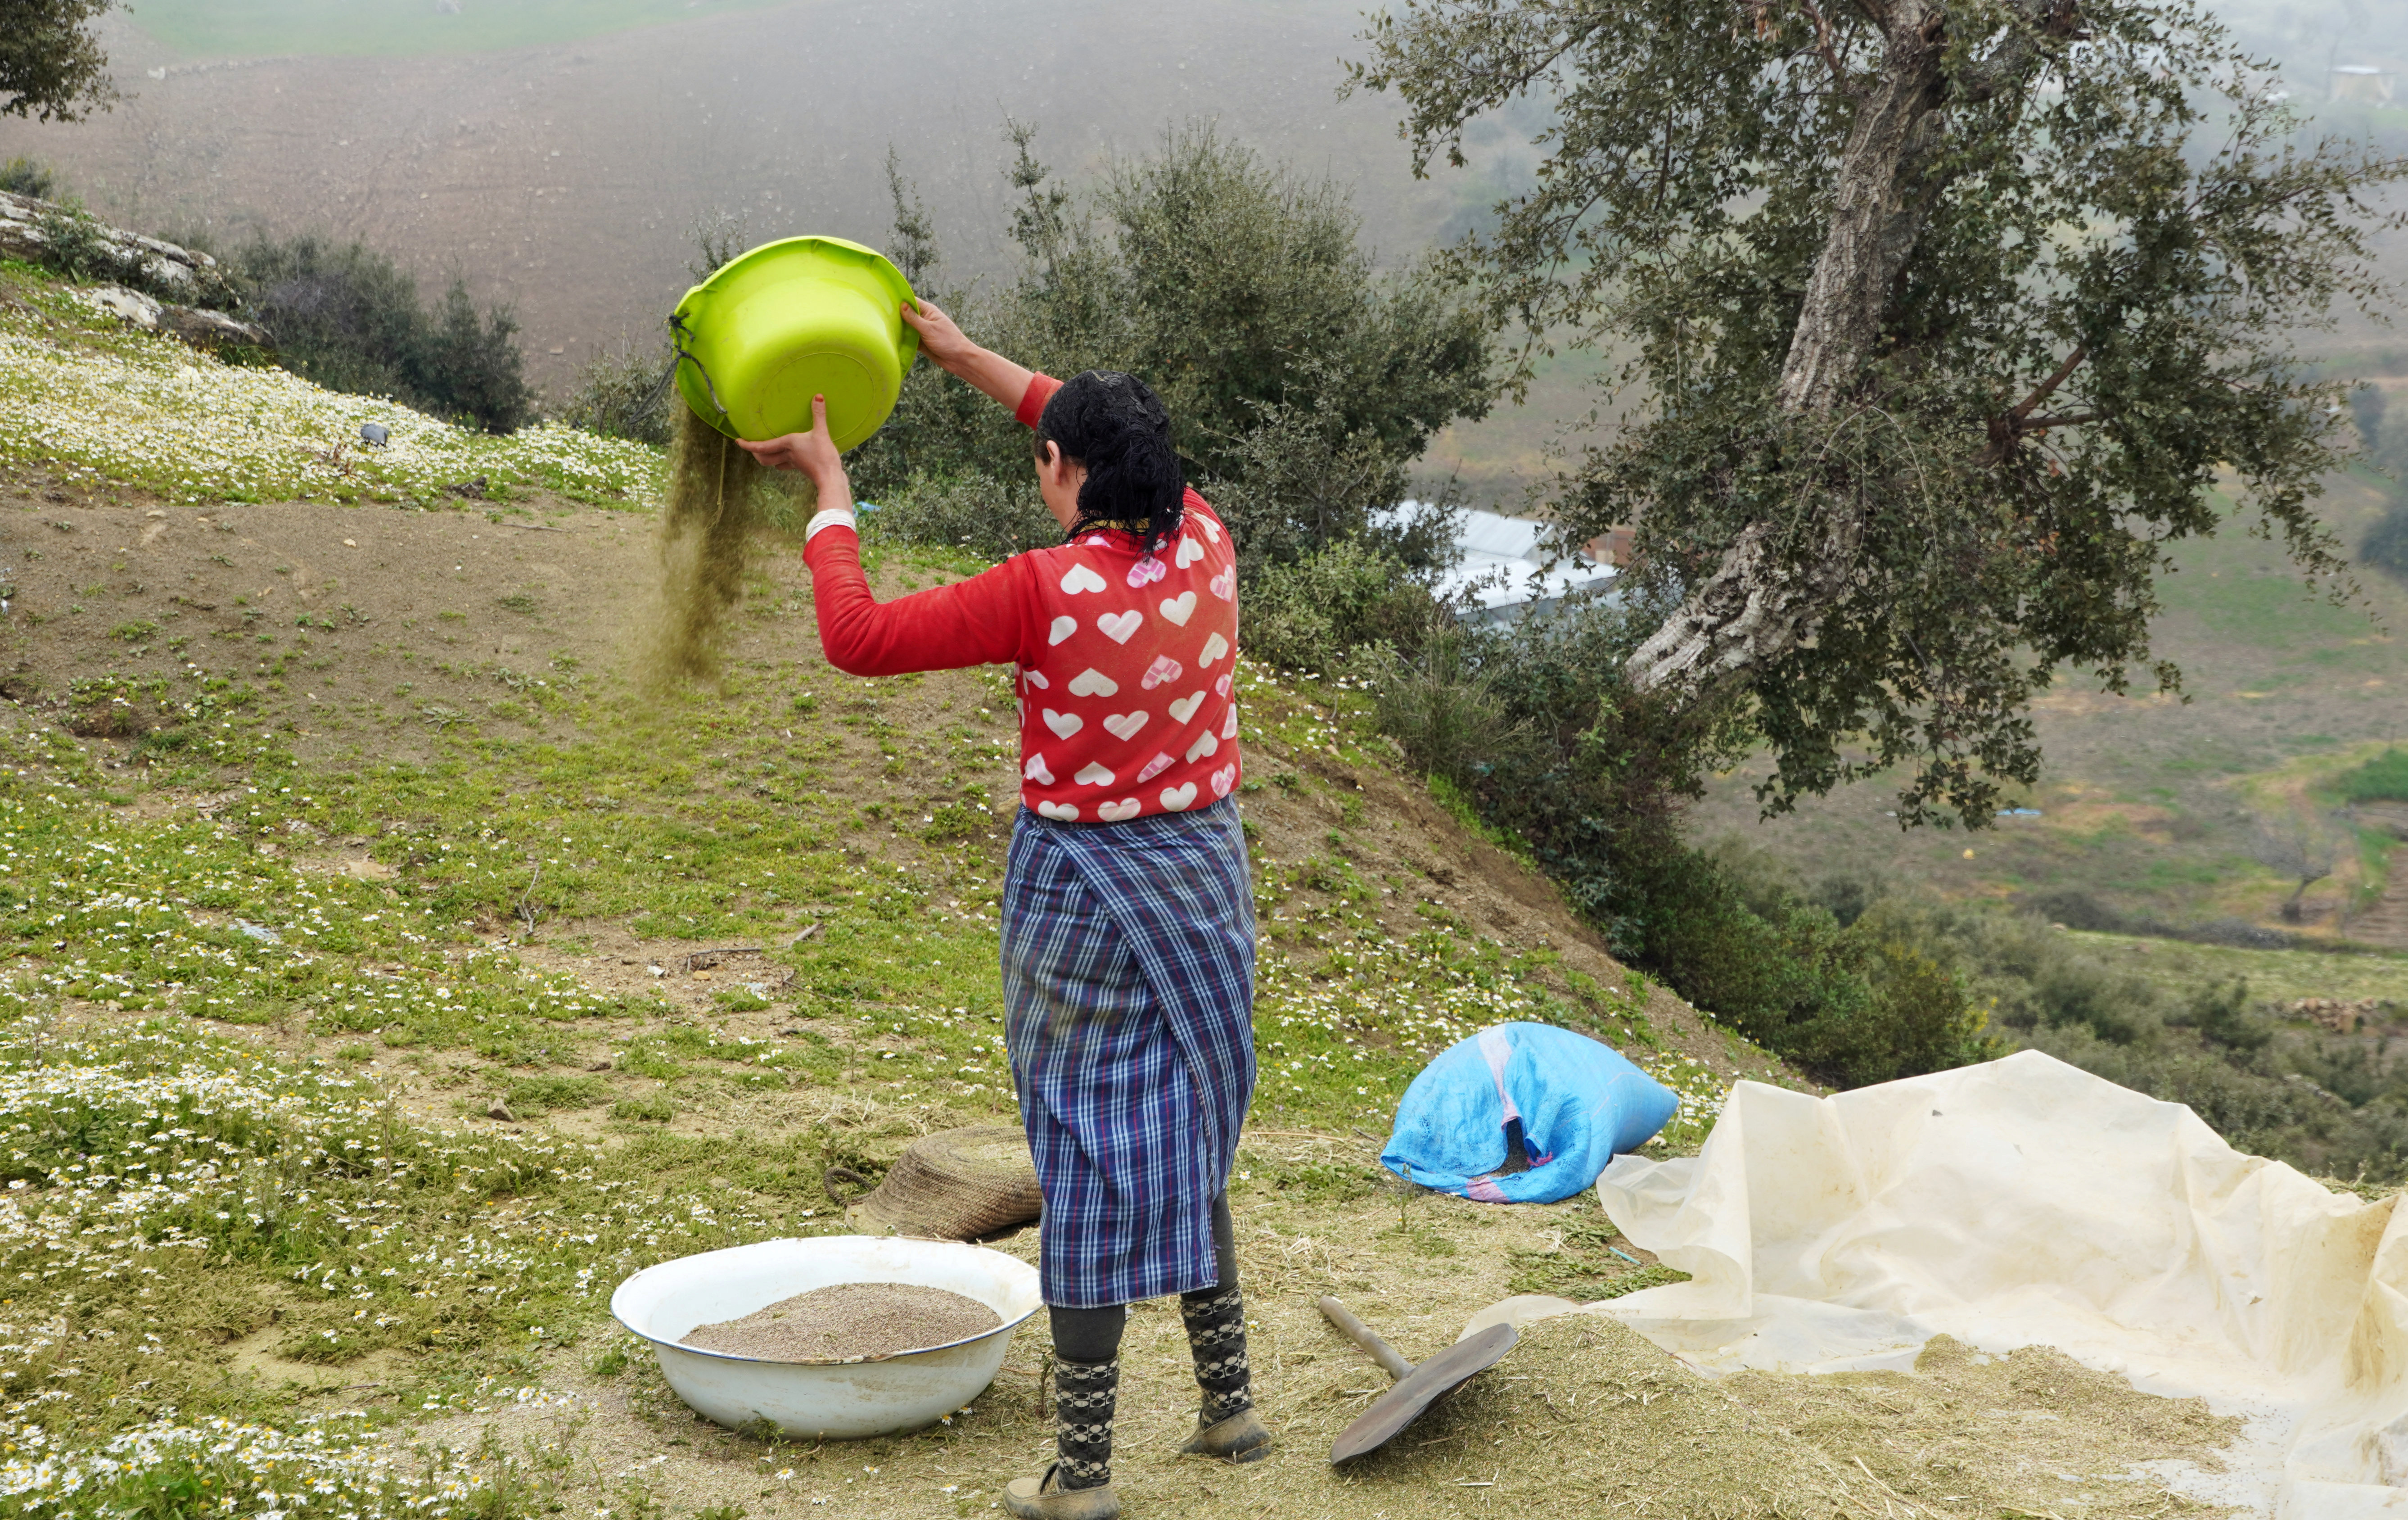 A farmer works on cannabis seeds at a village near Ketama, in the northern Rif mountains, Morocco March 13, 2021. Picture taken March 13, 2021. REUTERS/Stringer